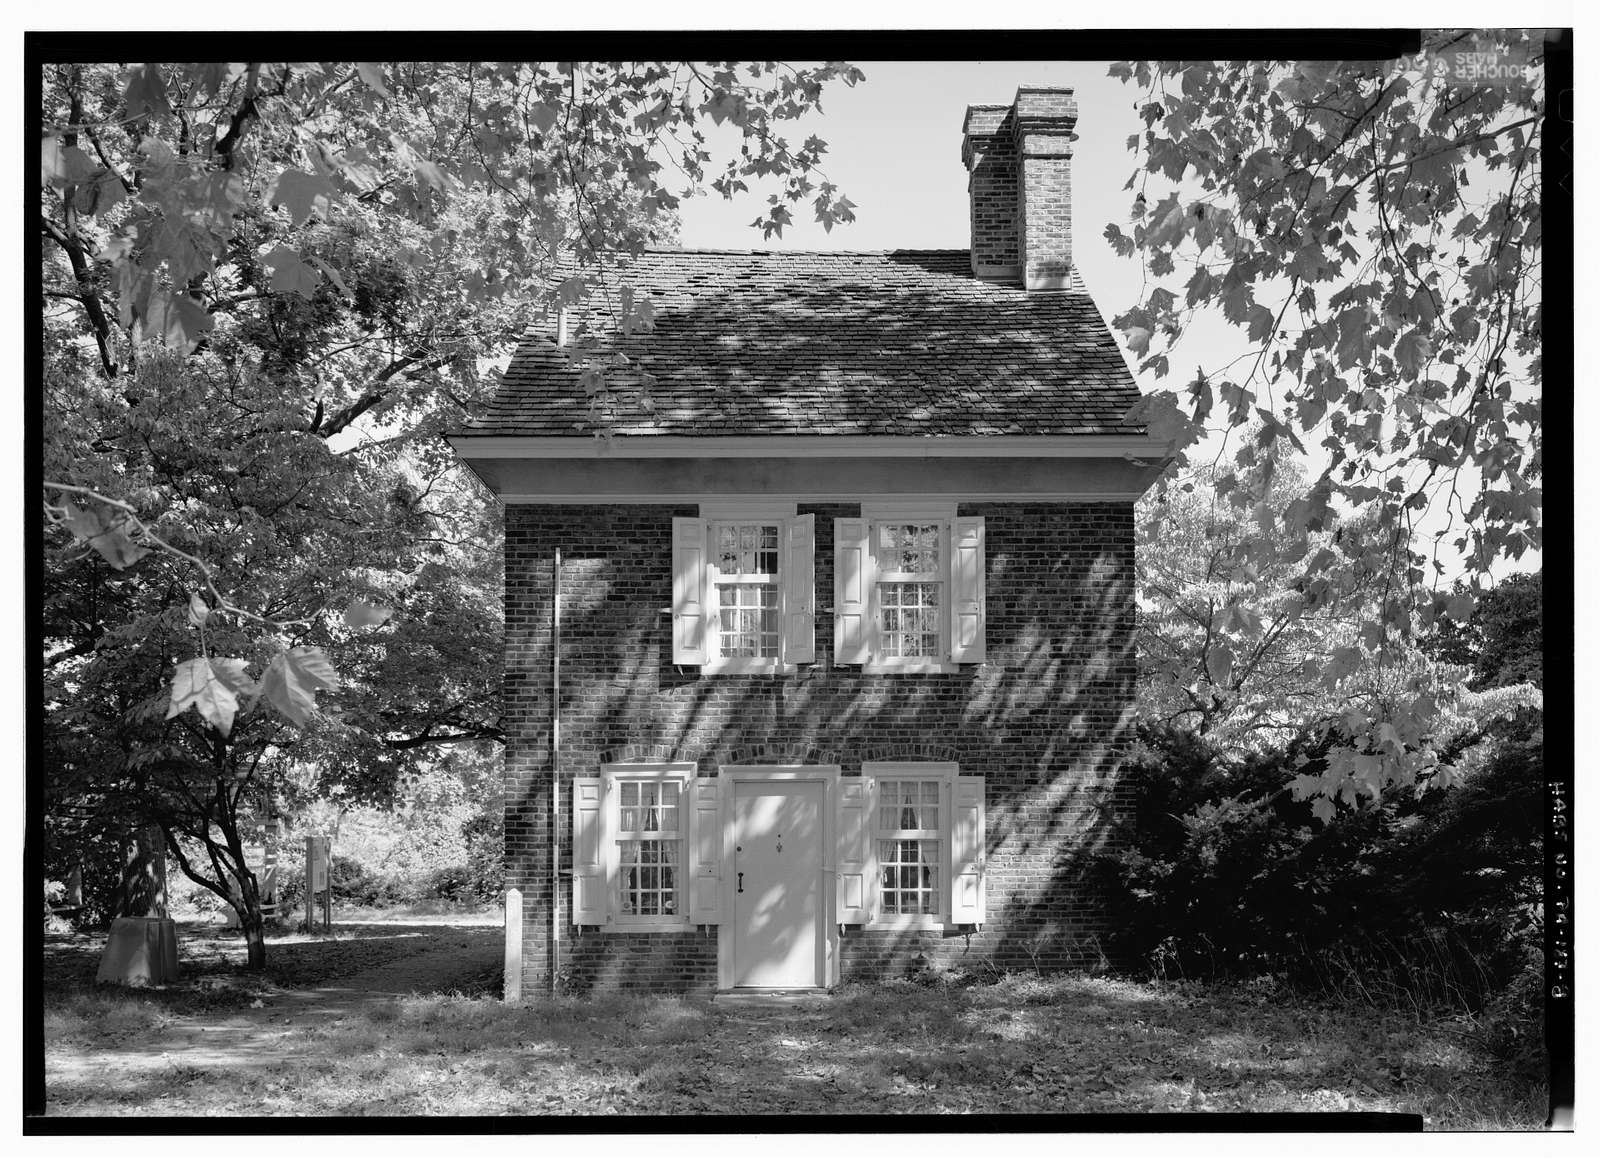 Letitia Street House, Lansdowne Drive, West Fairmount Park, Philadelphia, Philadelphia County, PA